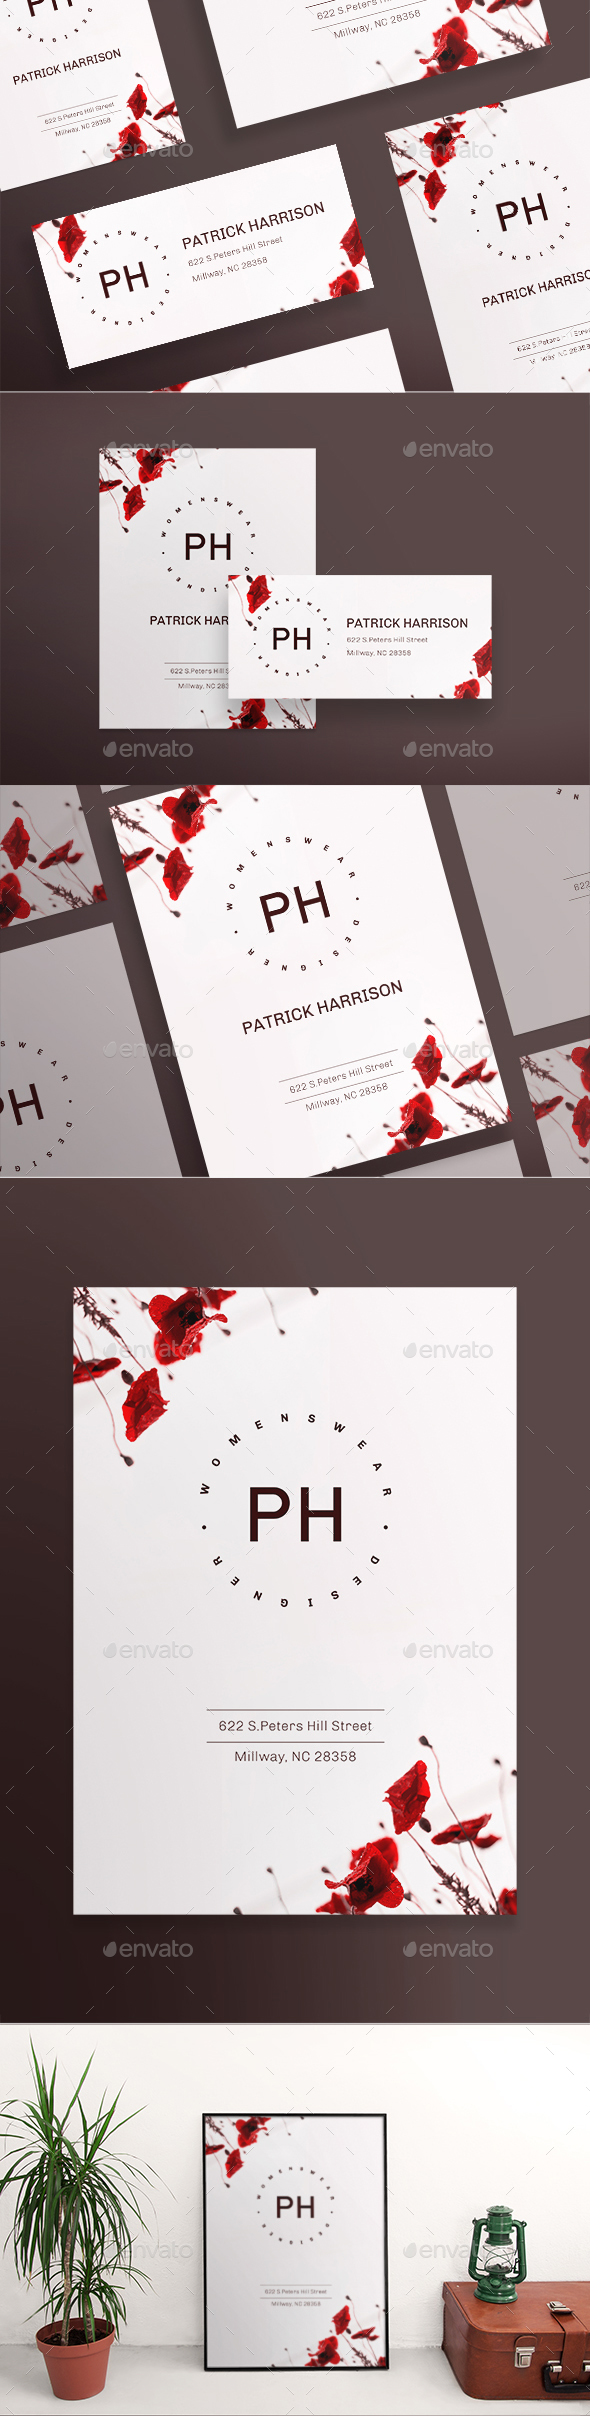 Fashion Style Flyers - Flyers Print Templates